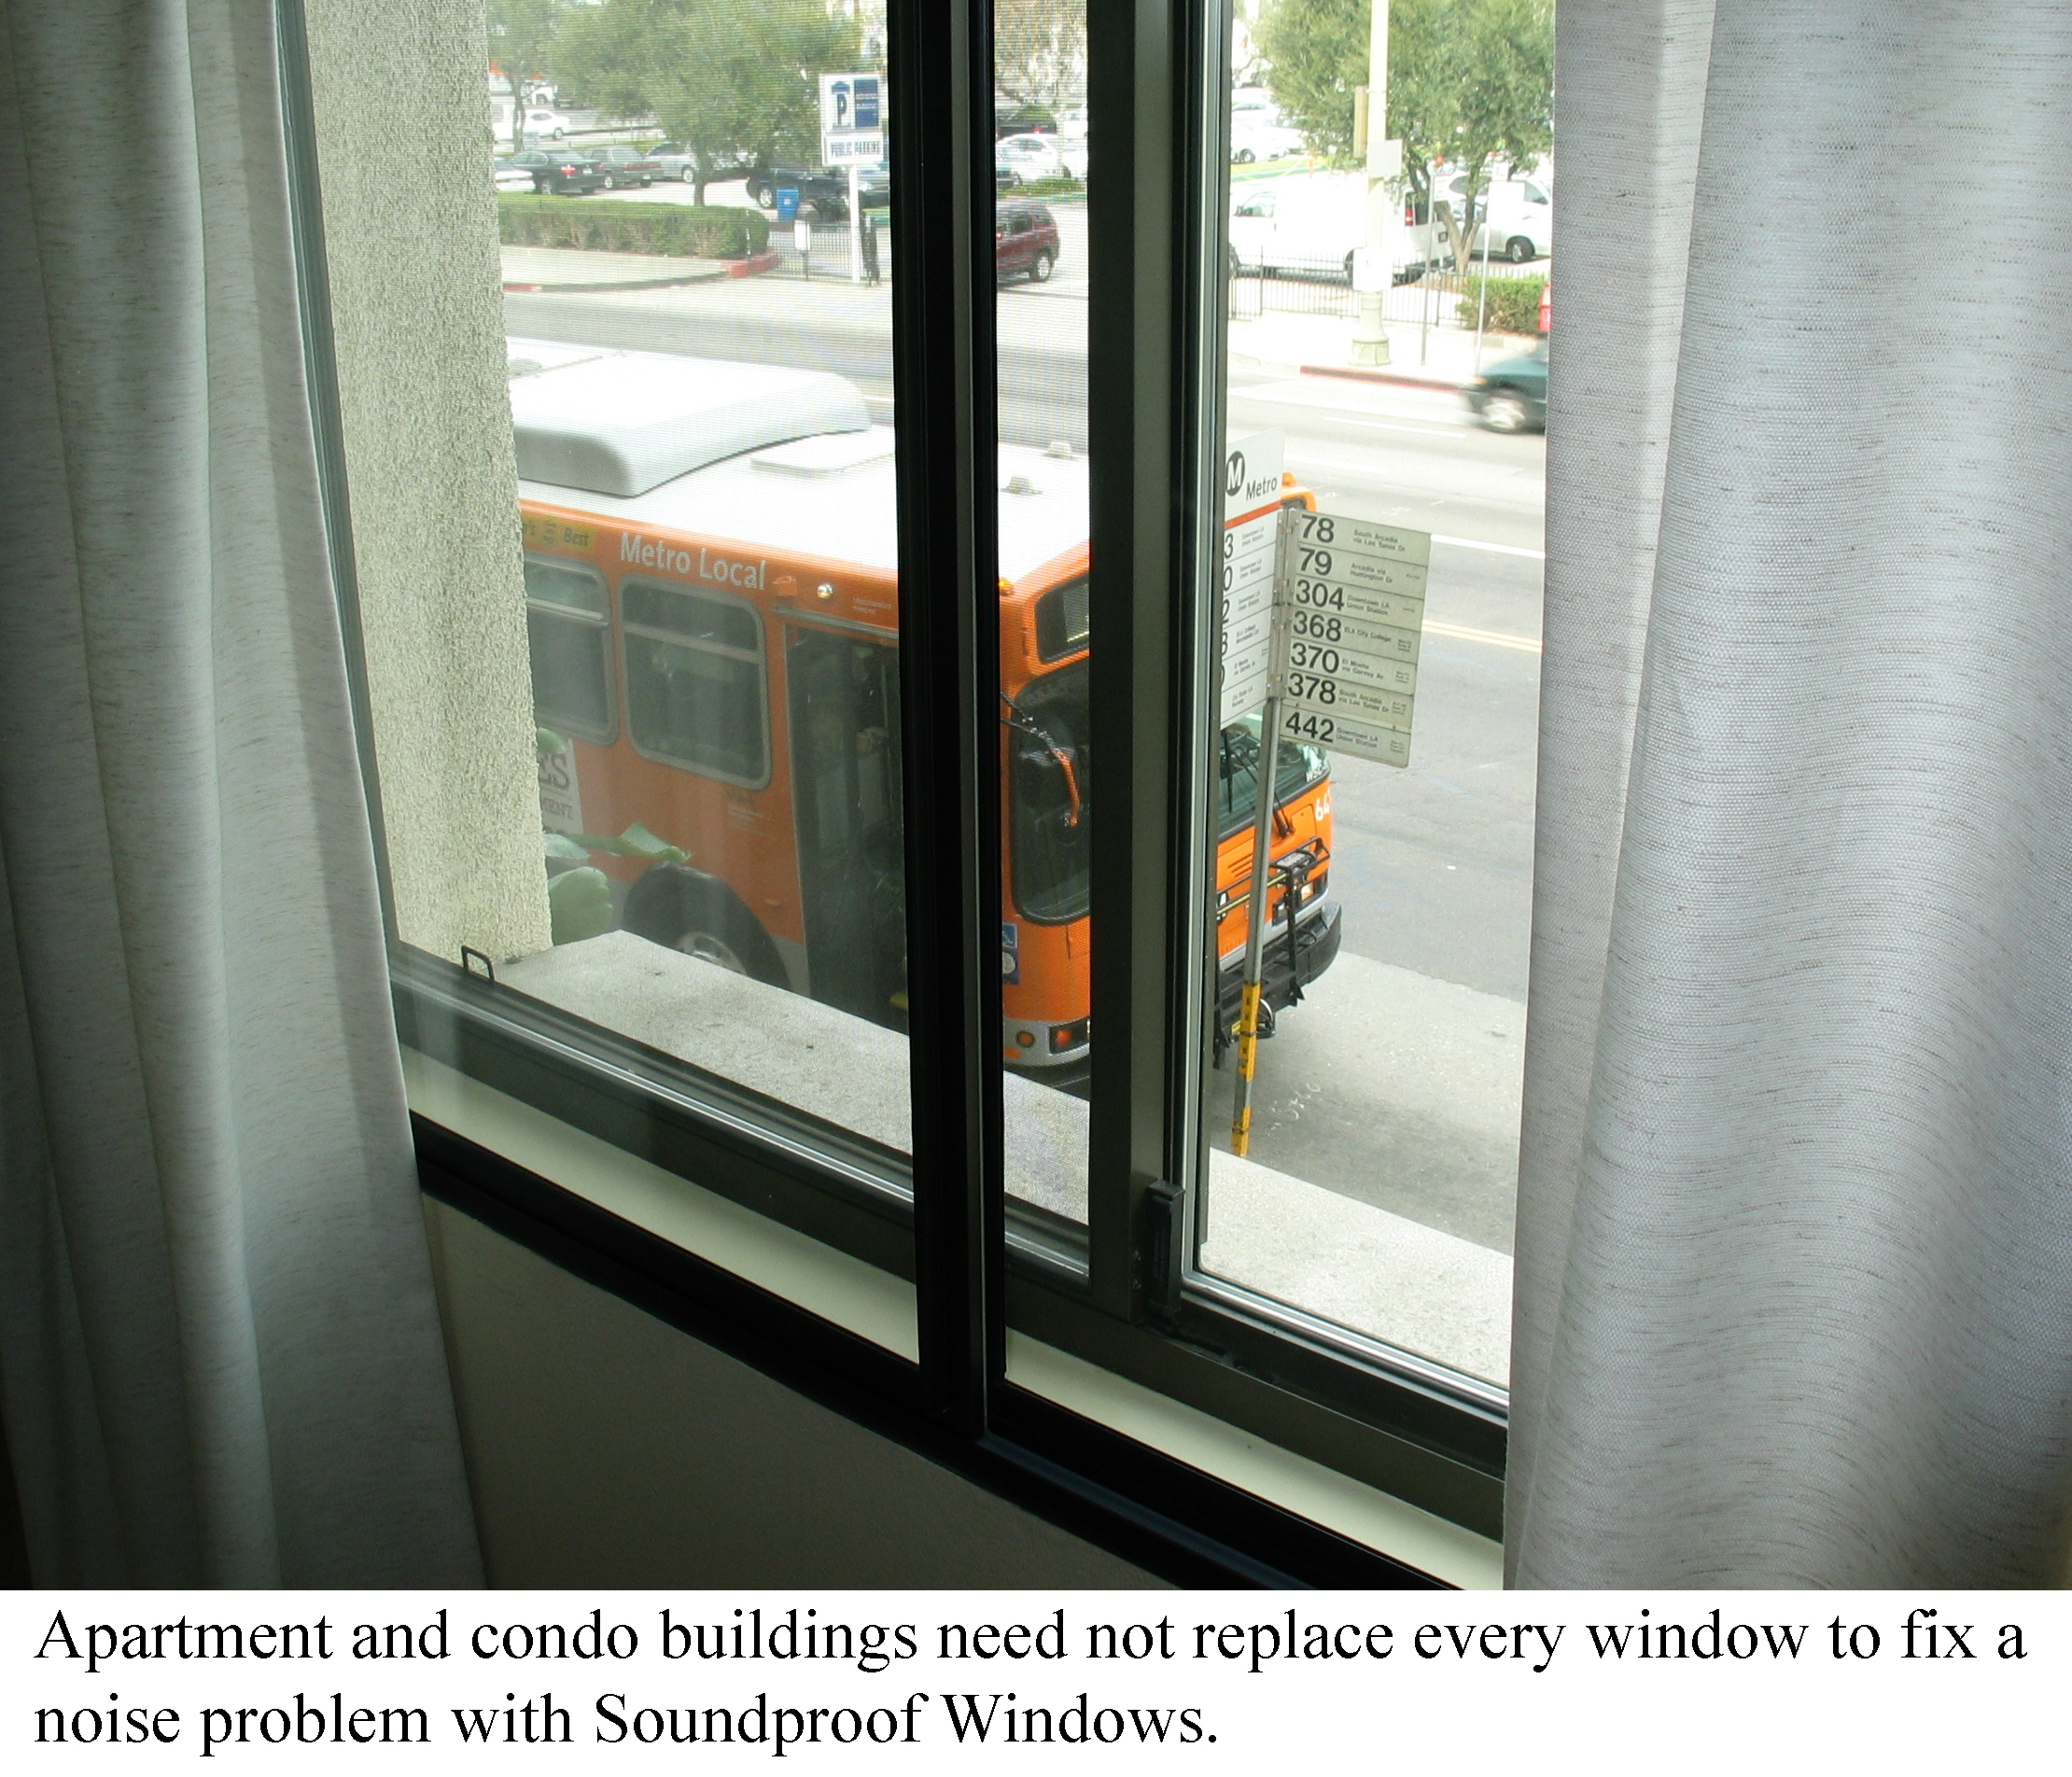 Soundproof windows cost - A Main Artery In A Suburb Invites Speeding Cars As Well As Belching Trucks And Buses A Nearby Railroad Cross Is Another Noise Culprit As Are Off Road